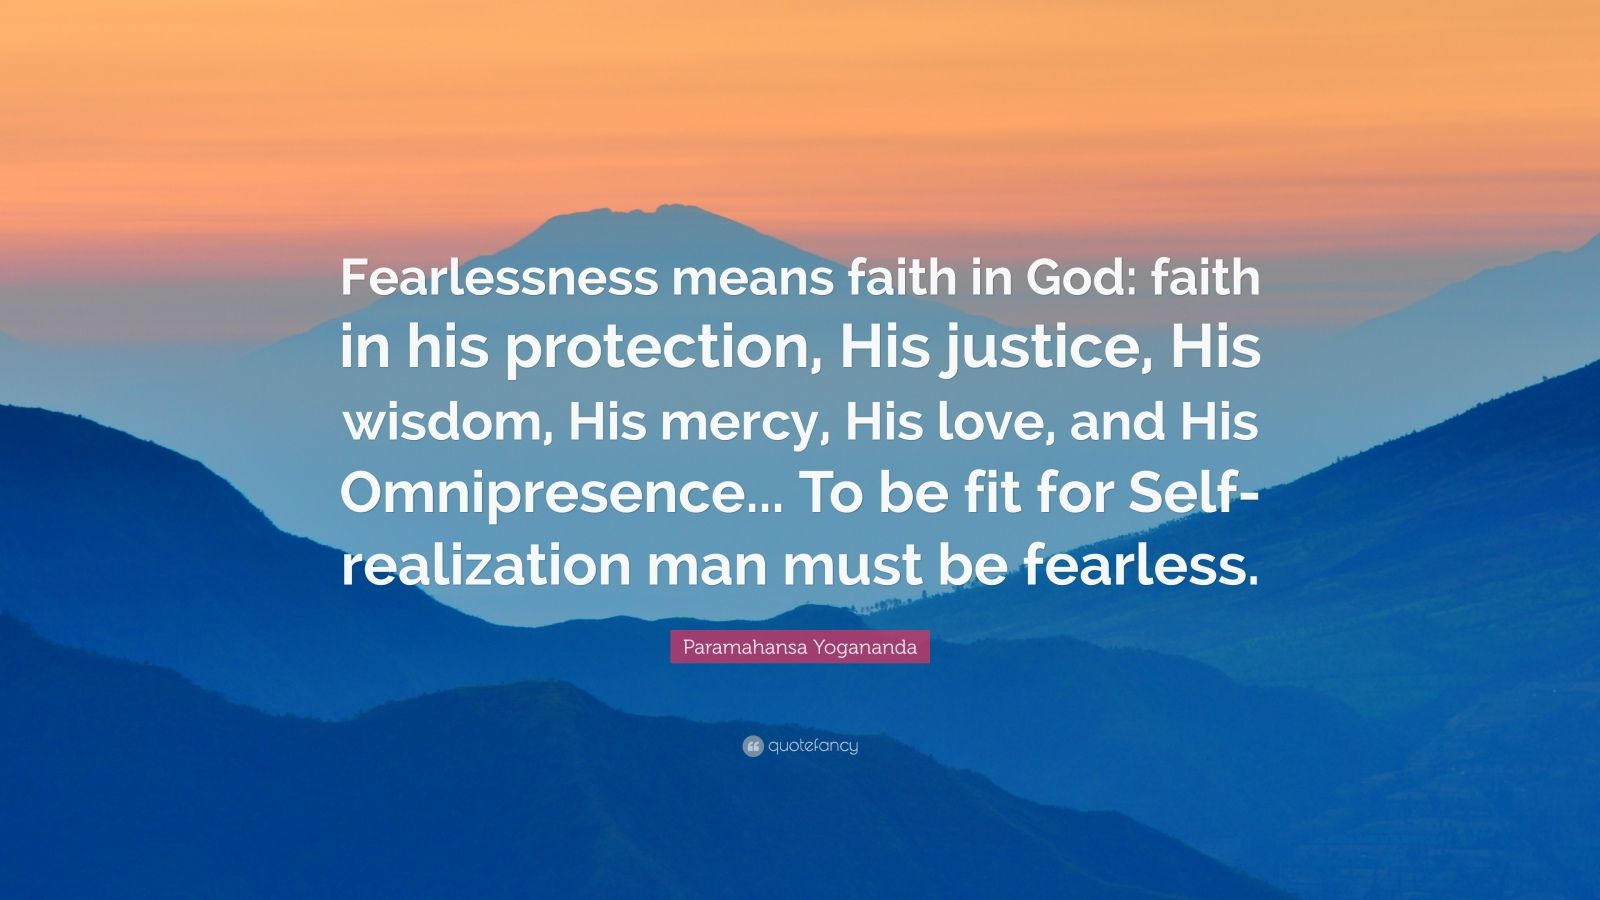 """Paramahansa Yogananda Quote: """"Fearlessness means faith in God: faith in his protection, His justice, His wisdom, His mercy, His love, and His Omnipresence... To be fit for Self-realization man must be fearless."""""""